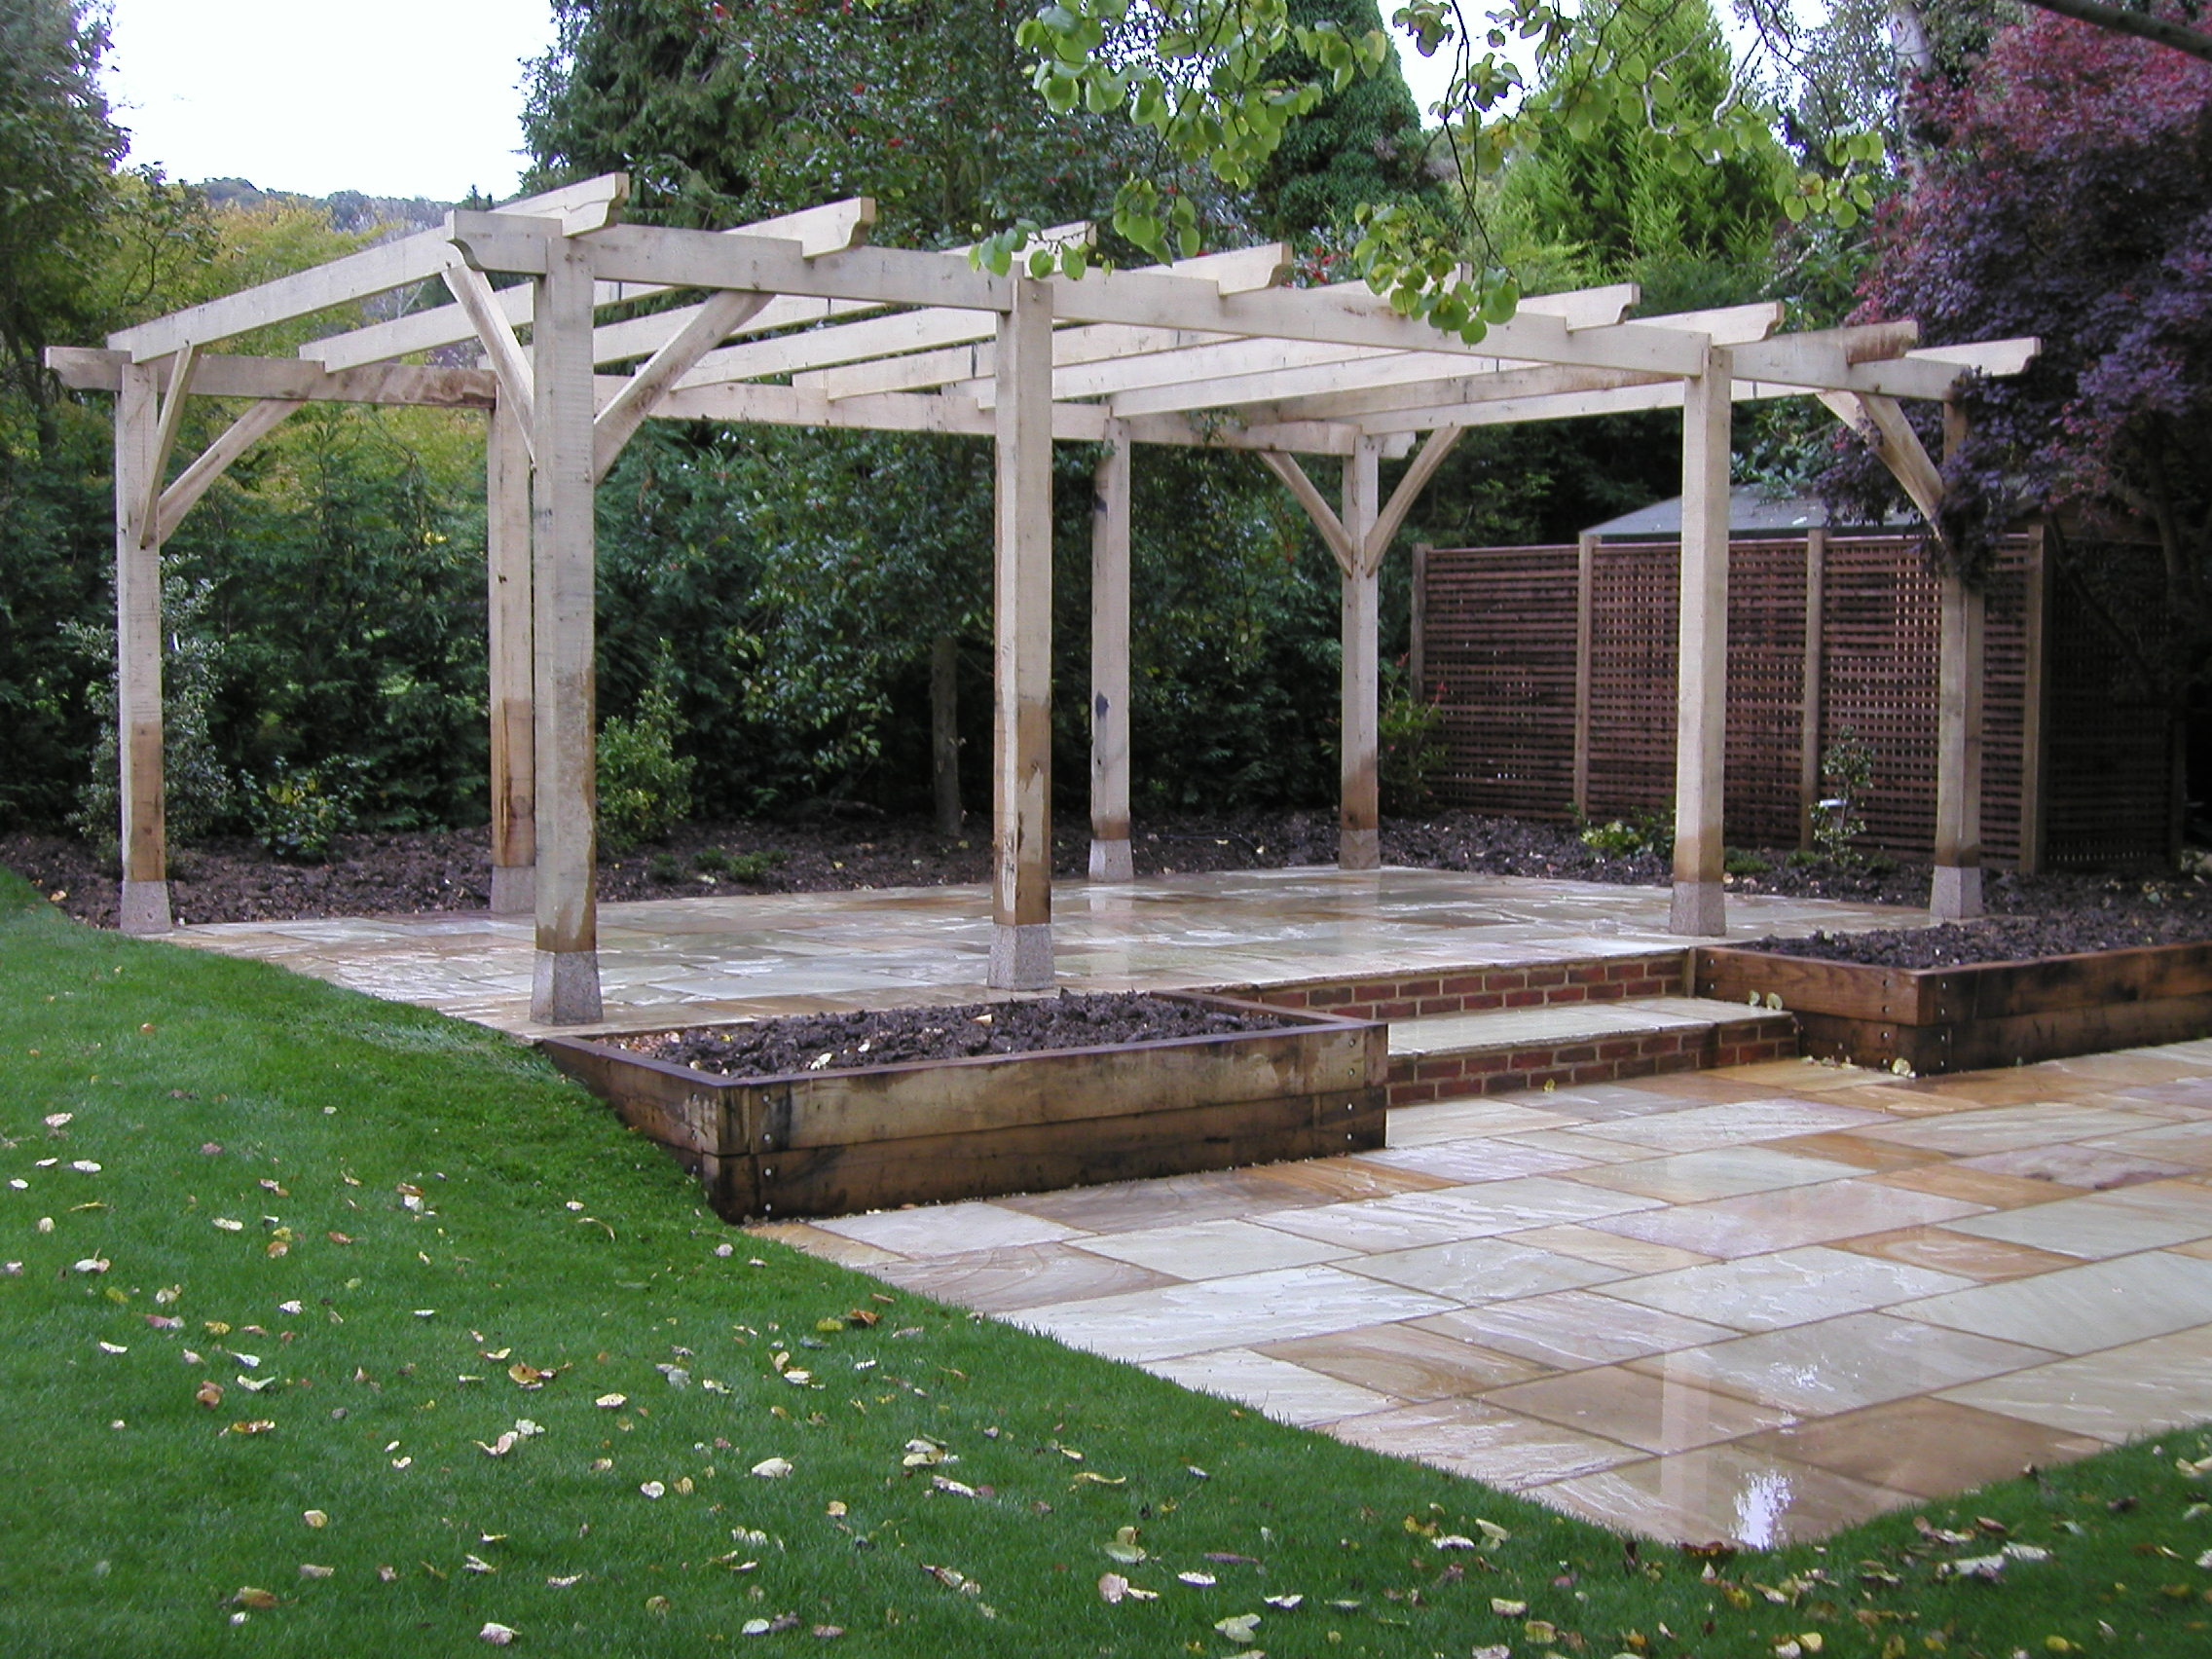 adl timber structures pergolas garden landscaping. Black Bedroom Furniture Sets. Home Design Ideas